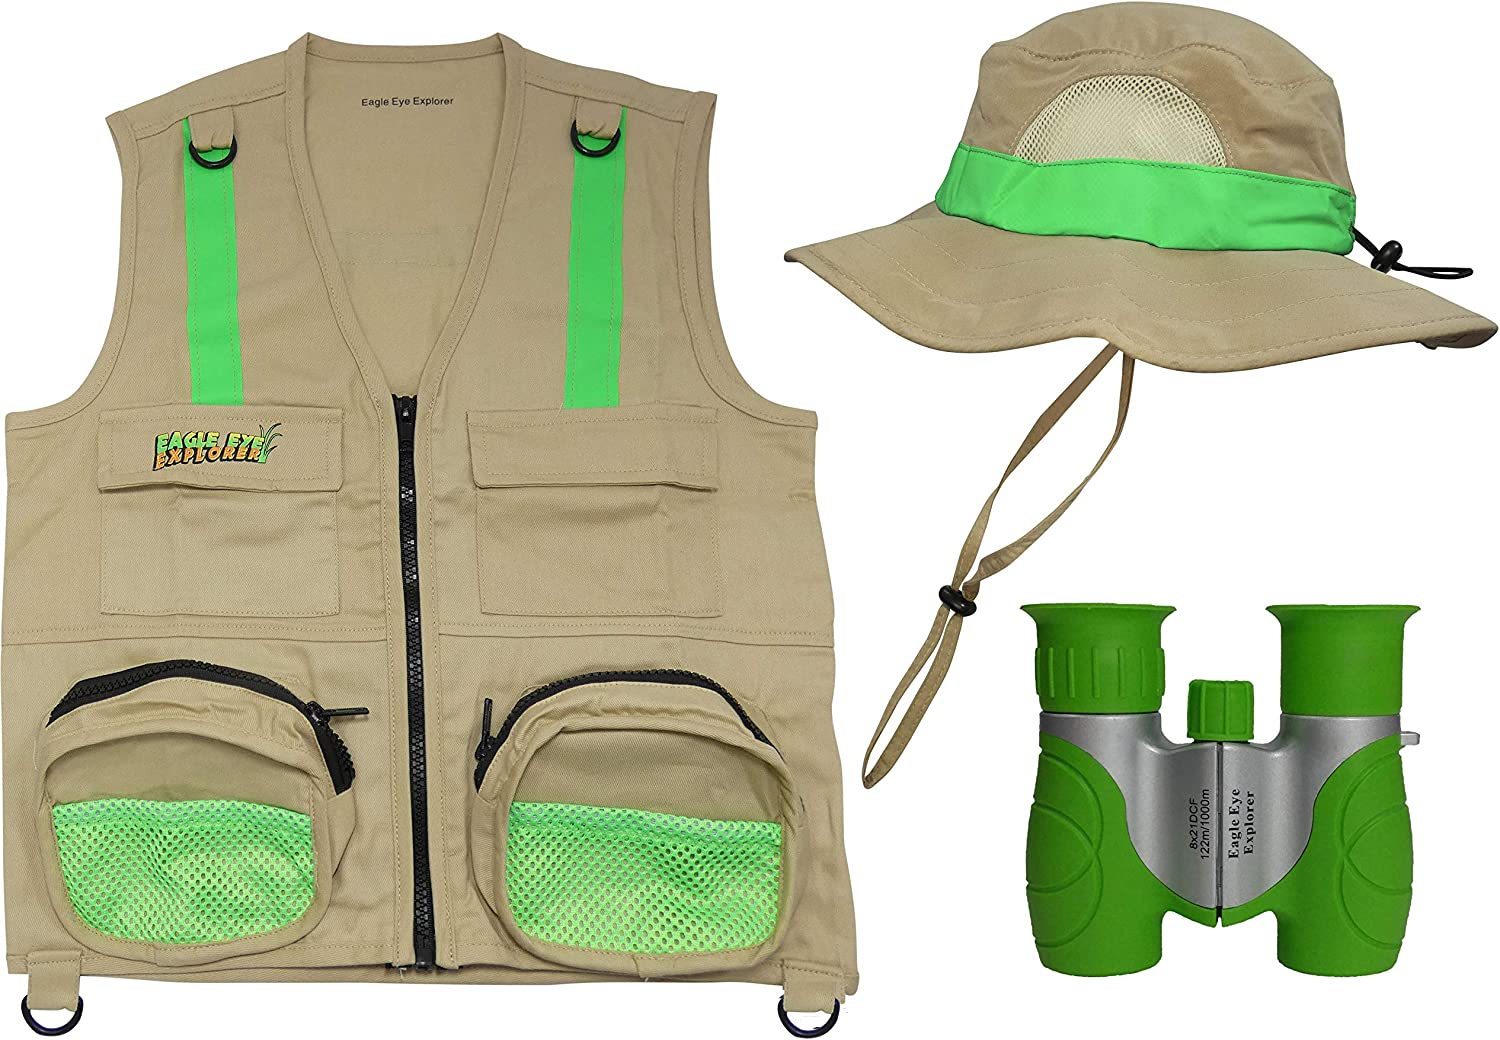 Eagle Eye Explorer Multi-Piece Set Max 74% OFF Reflective Sa Cargo We OFFer at cheap prices Vest with